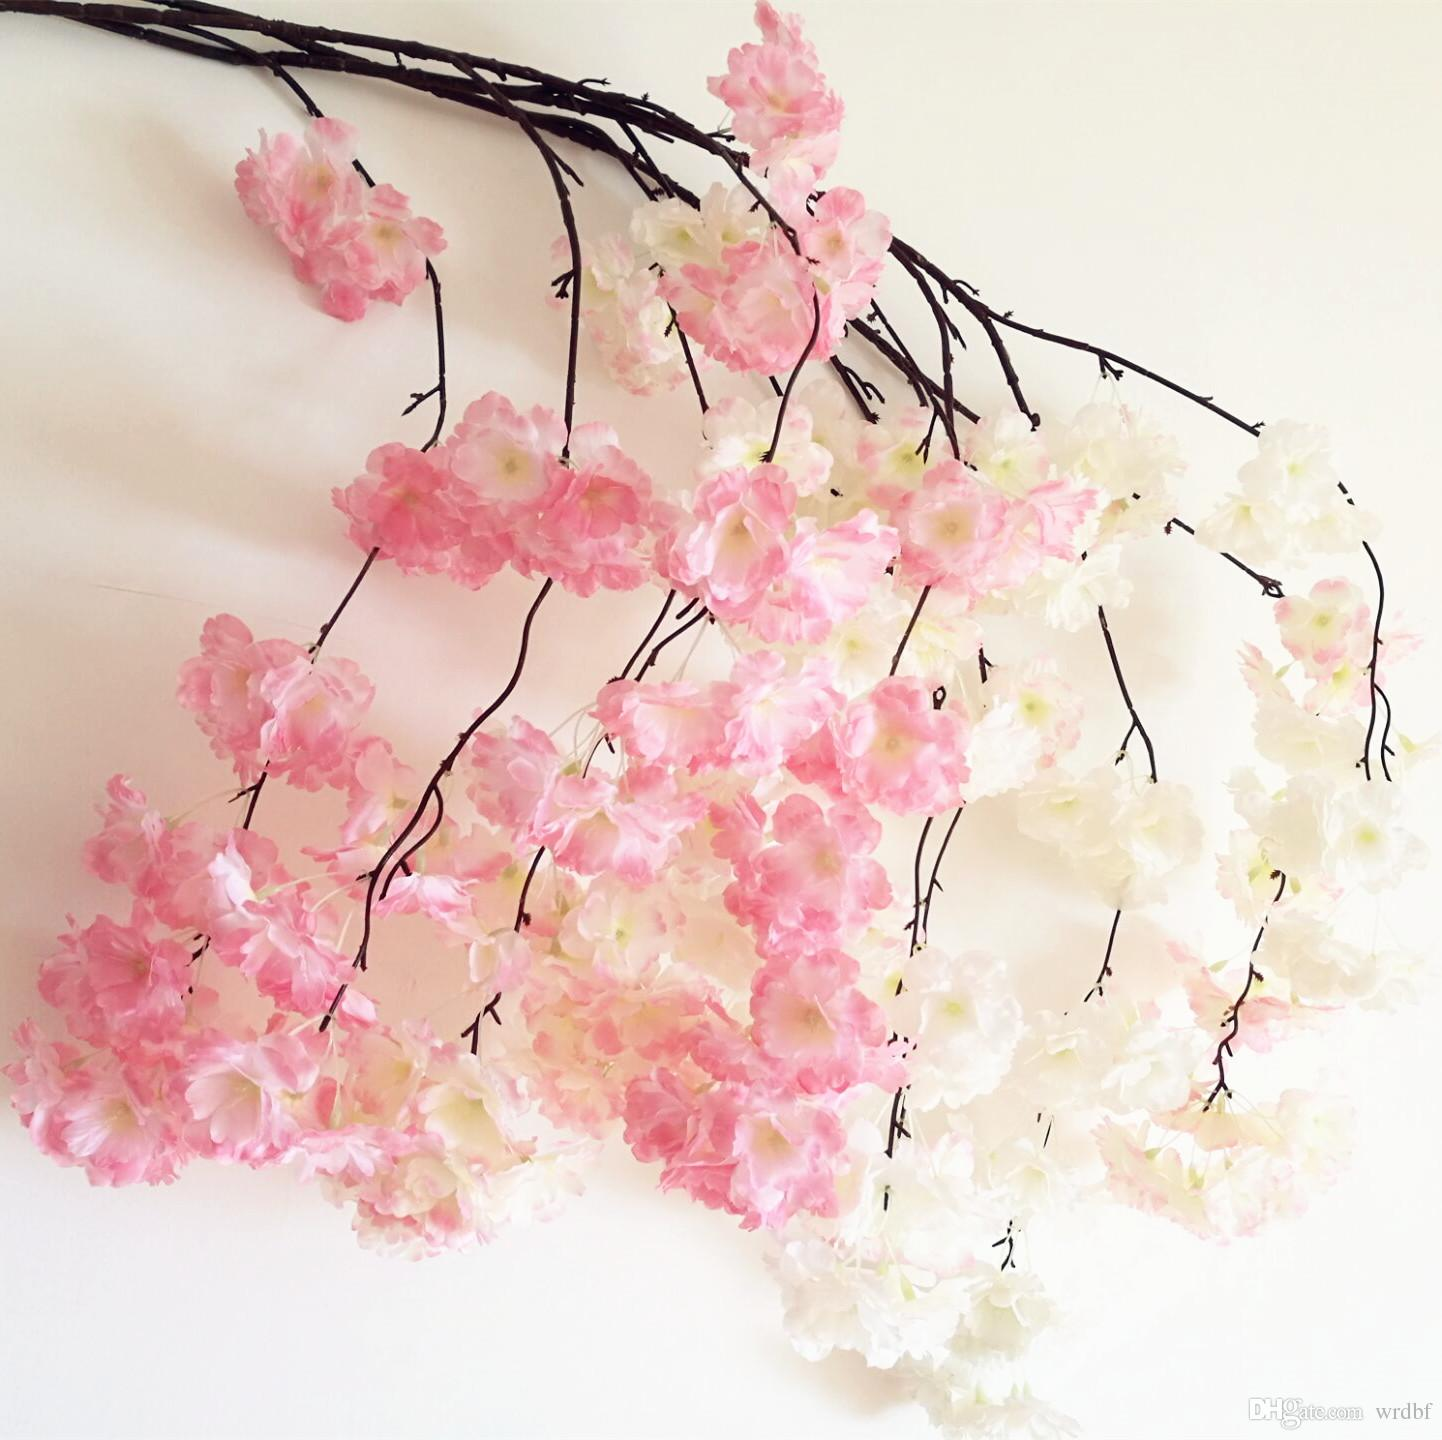 Fake cherry blossom flower branch begonia sakura tree stem 130cm fake cherry blossom flower branch begonia sakura tree stem 130cm long for event wedding party artificial decorative flowers cherry blossom branch artificial dhlflorist Image collections